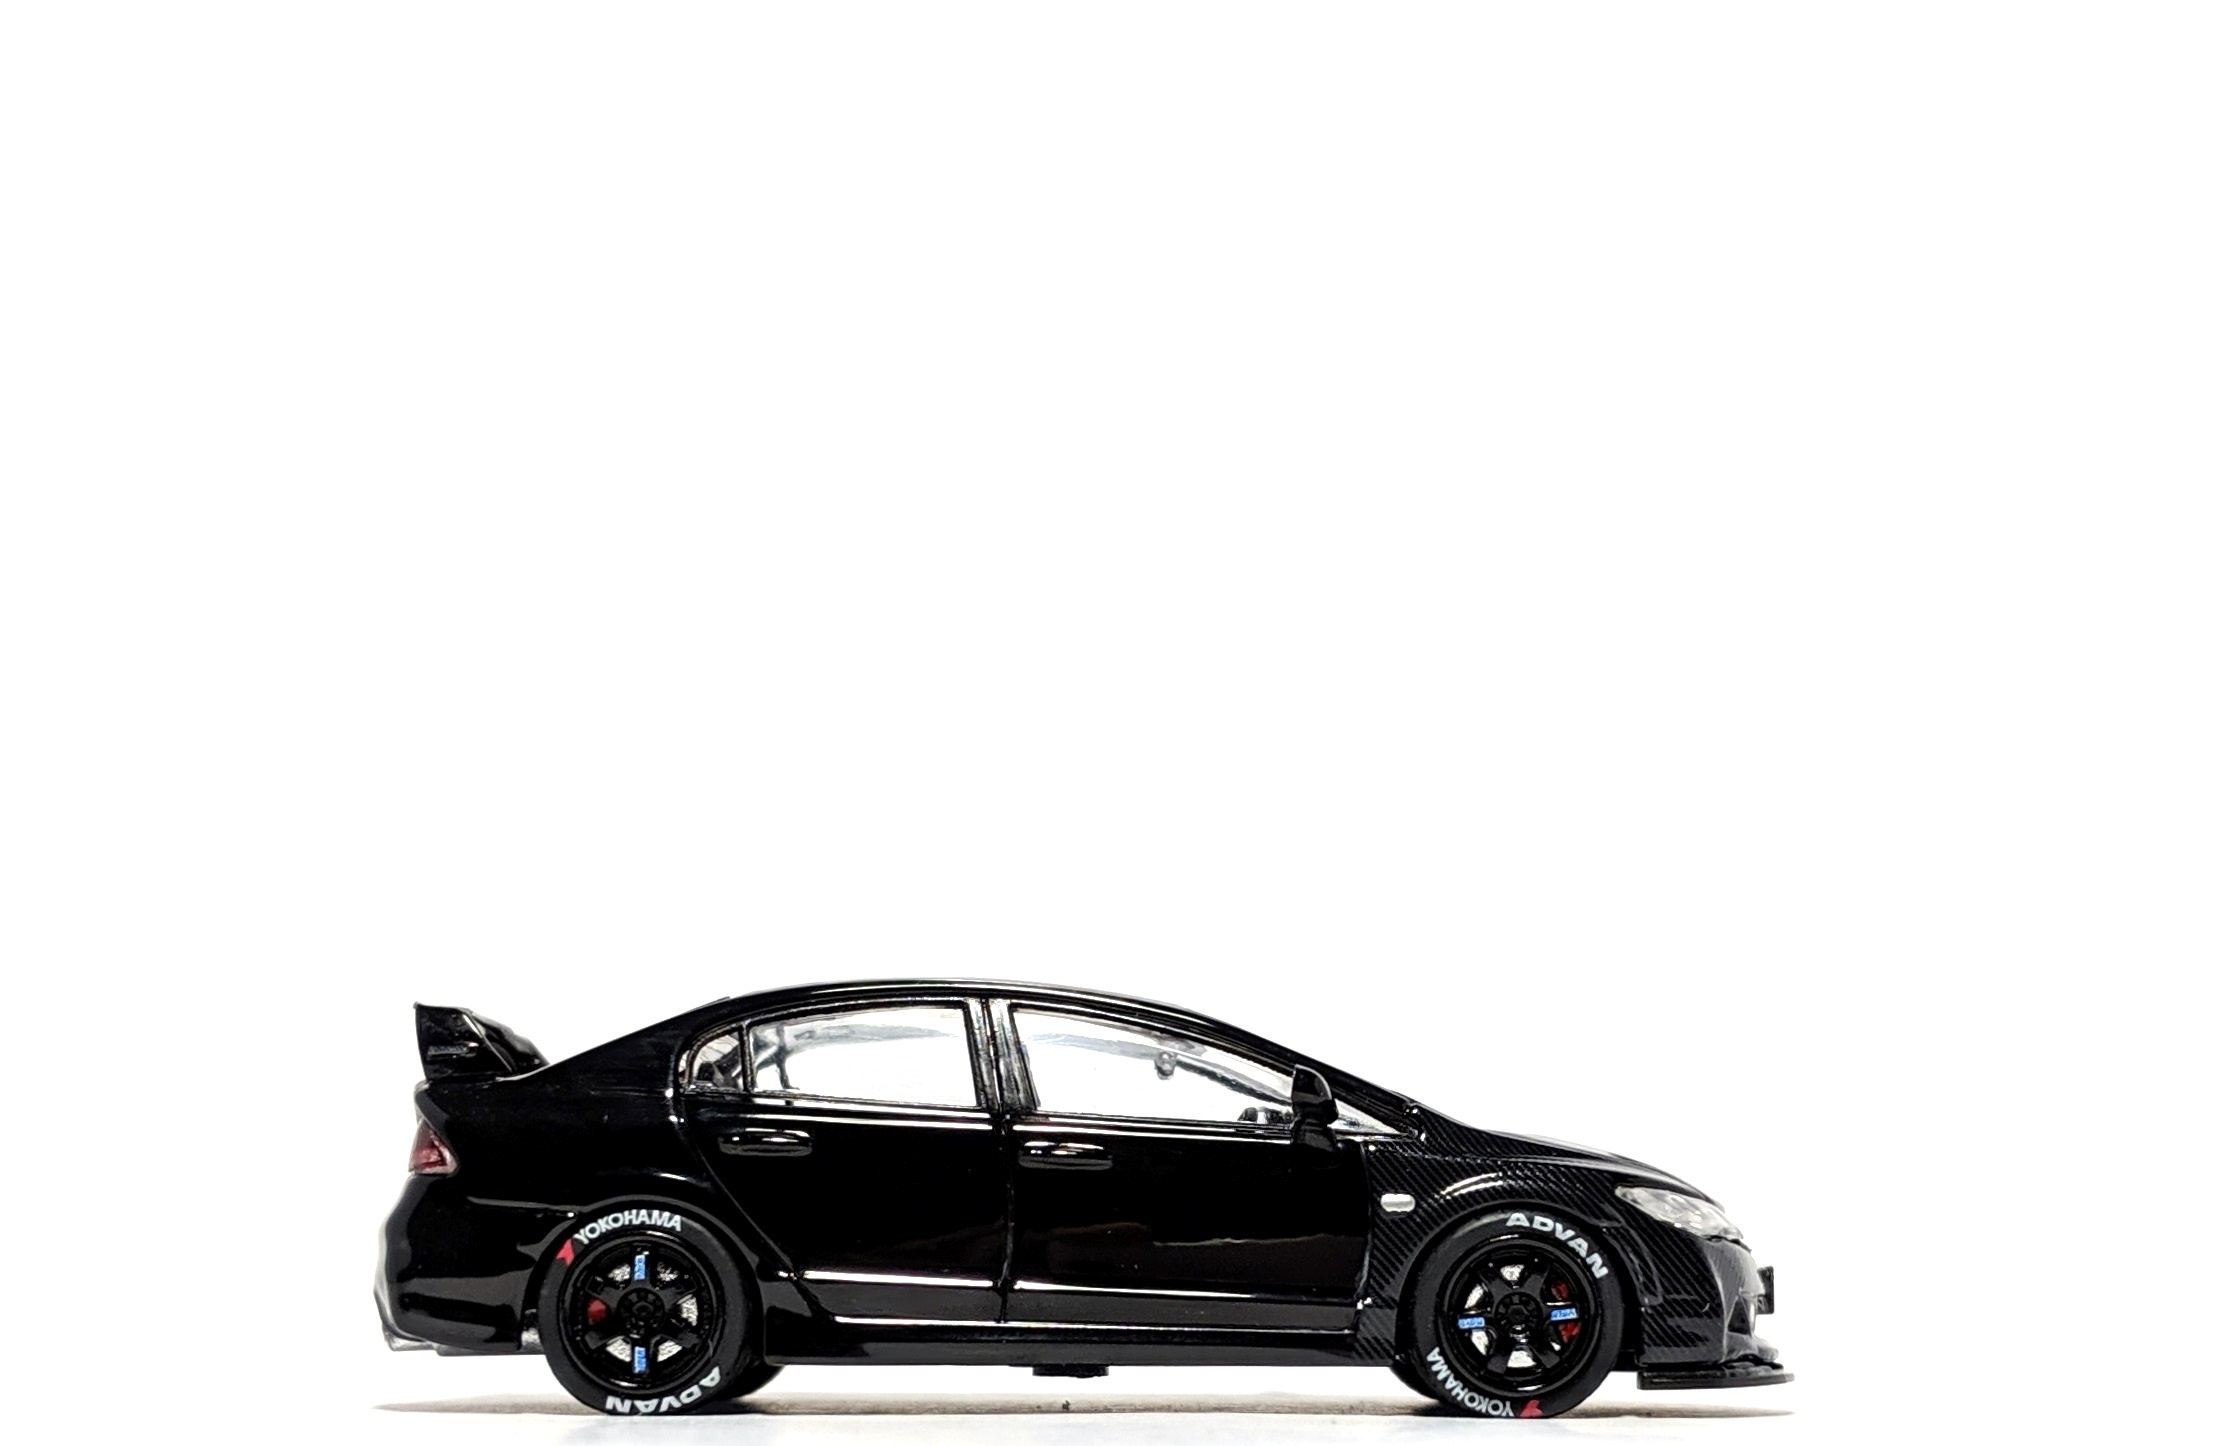 Honda Civic FD2 Mugen RR (Singapore Special Edition), by Inno64